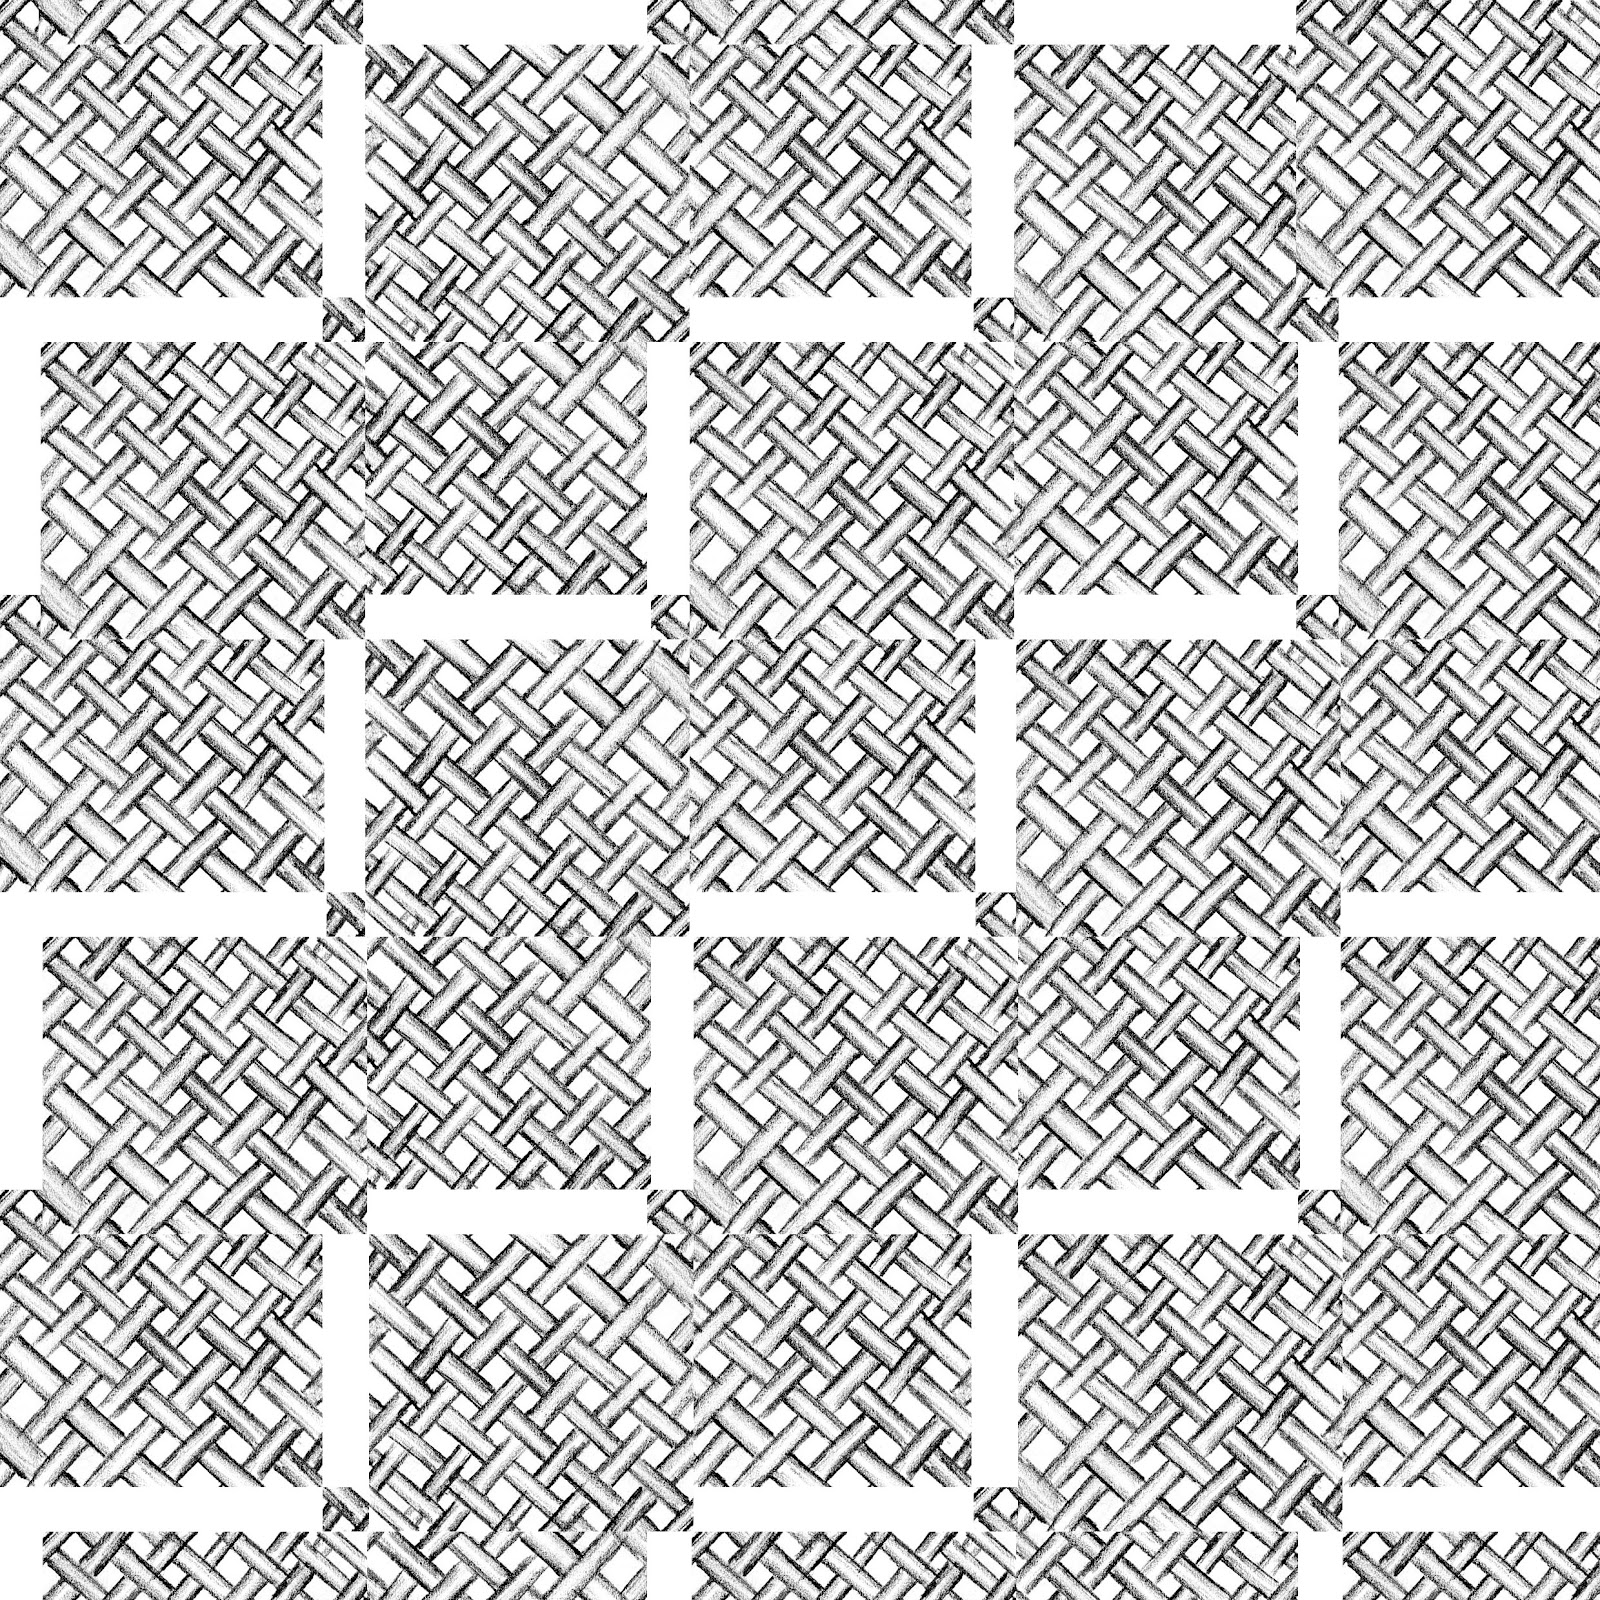 Victoria Wong Rhythm Repetition 2nd Pattern Reworked